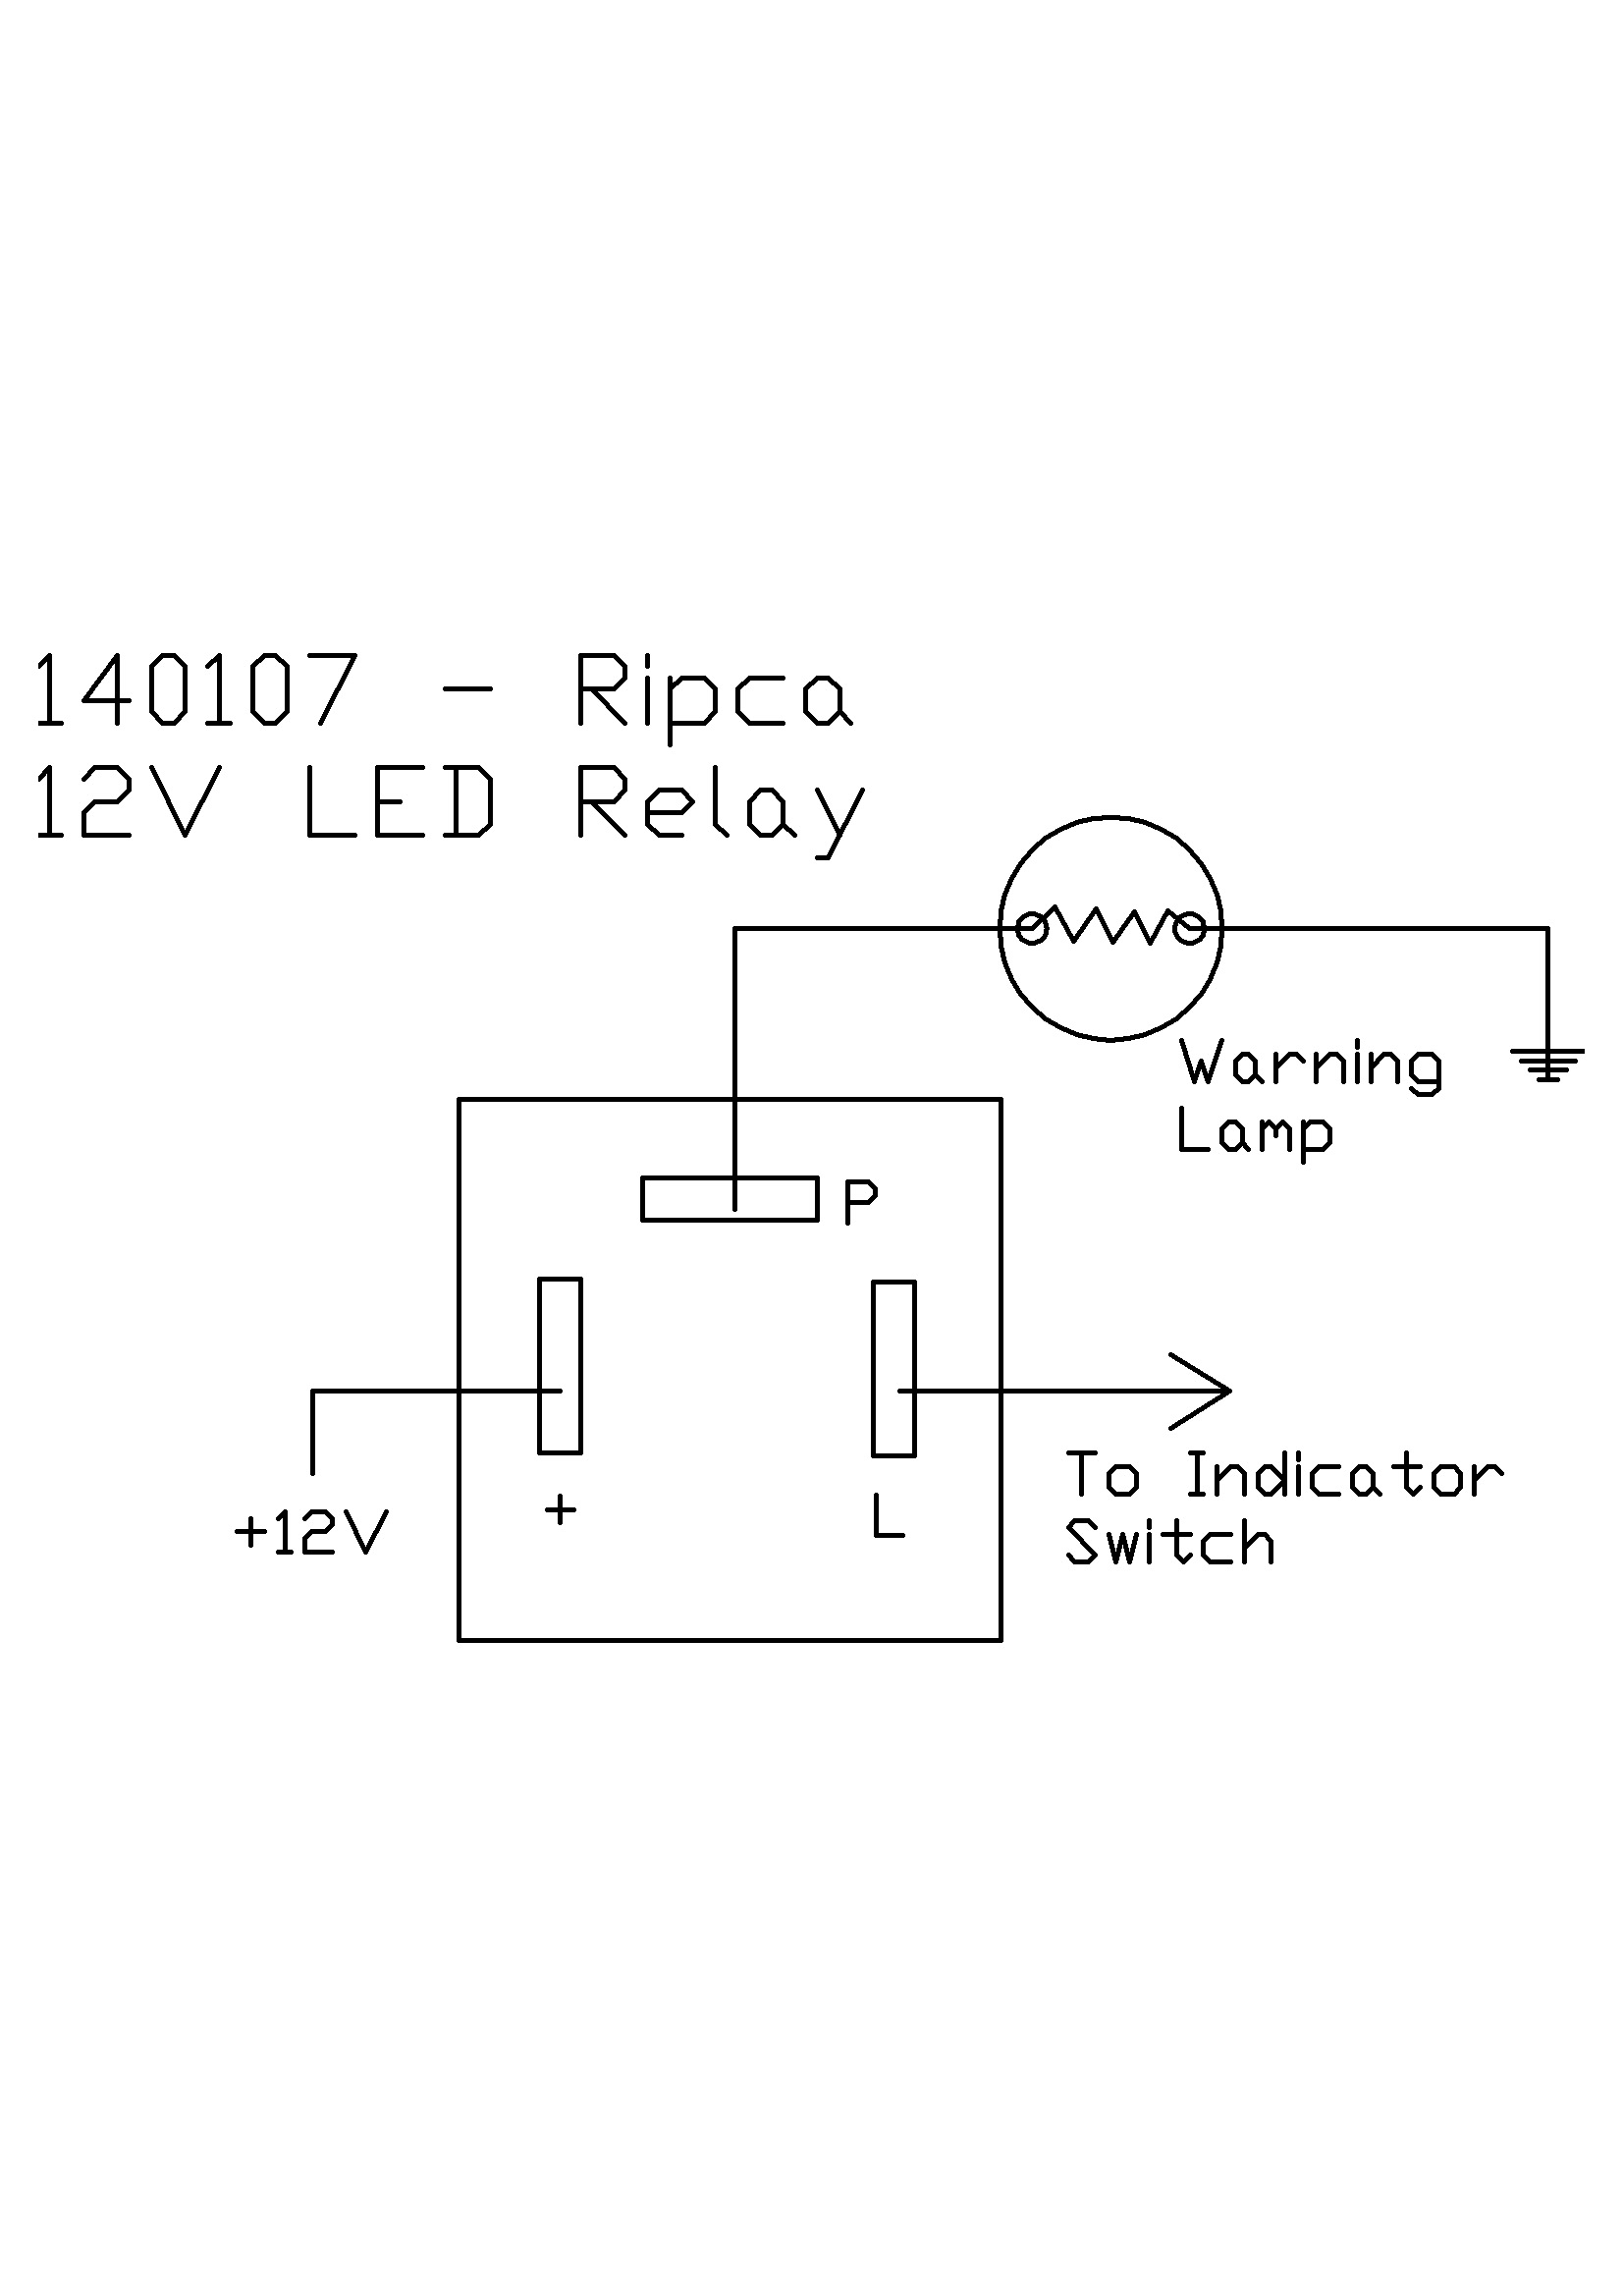 12 Volt Led Flasher Unit Relay Circuit Wiring Diagram Downloads